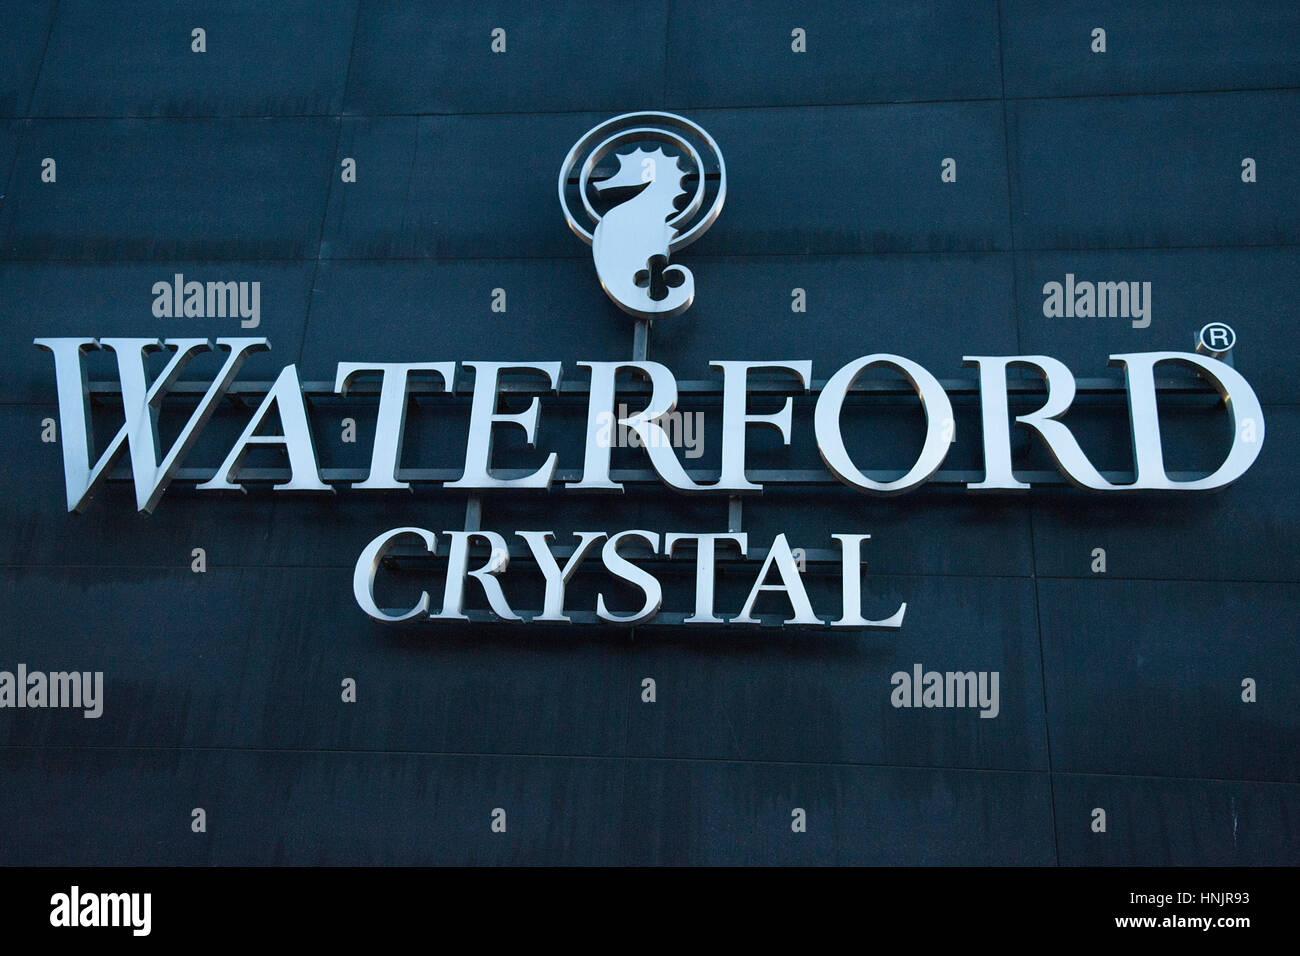 The Waterford crystal logo on the front of the Waterford Crystal Factory shop in Waterford city, Waterford, Ireland - Stock Image